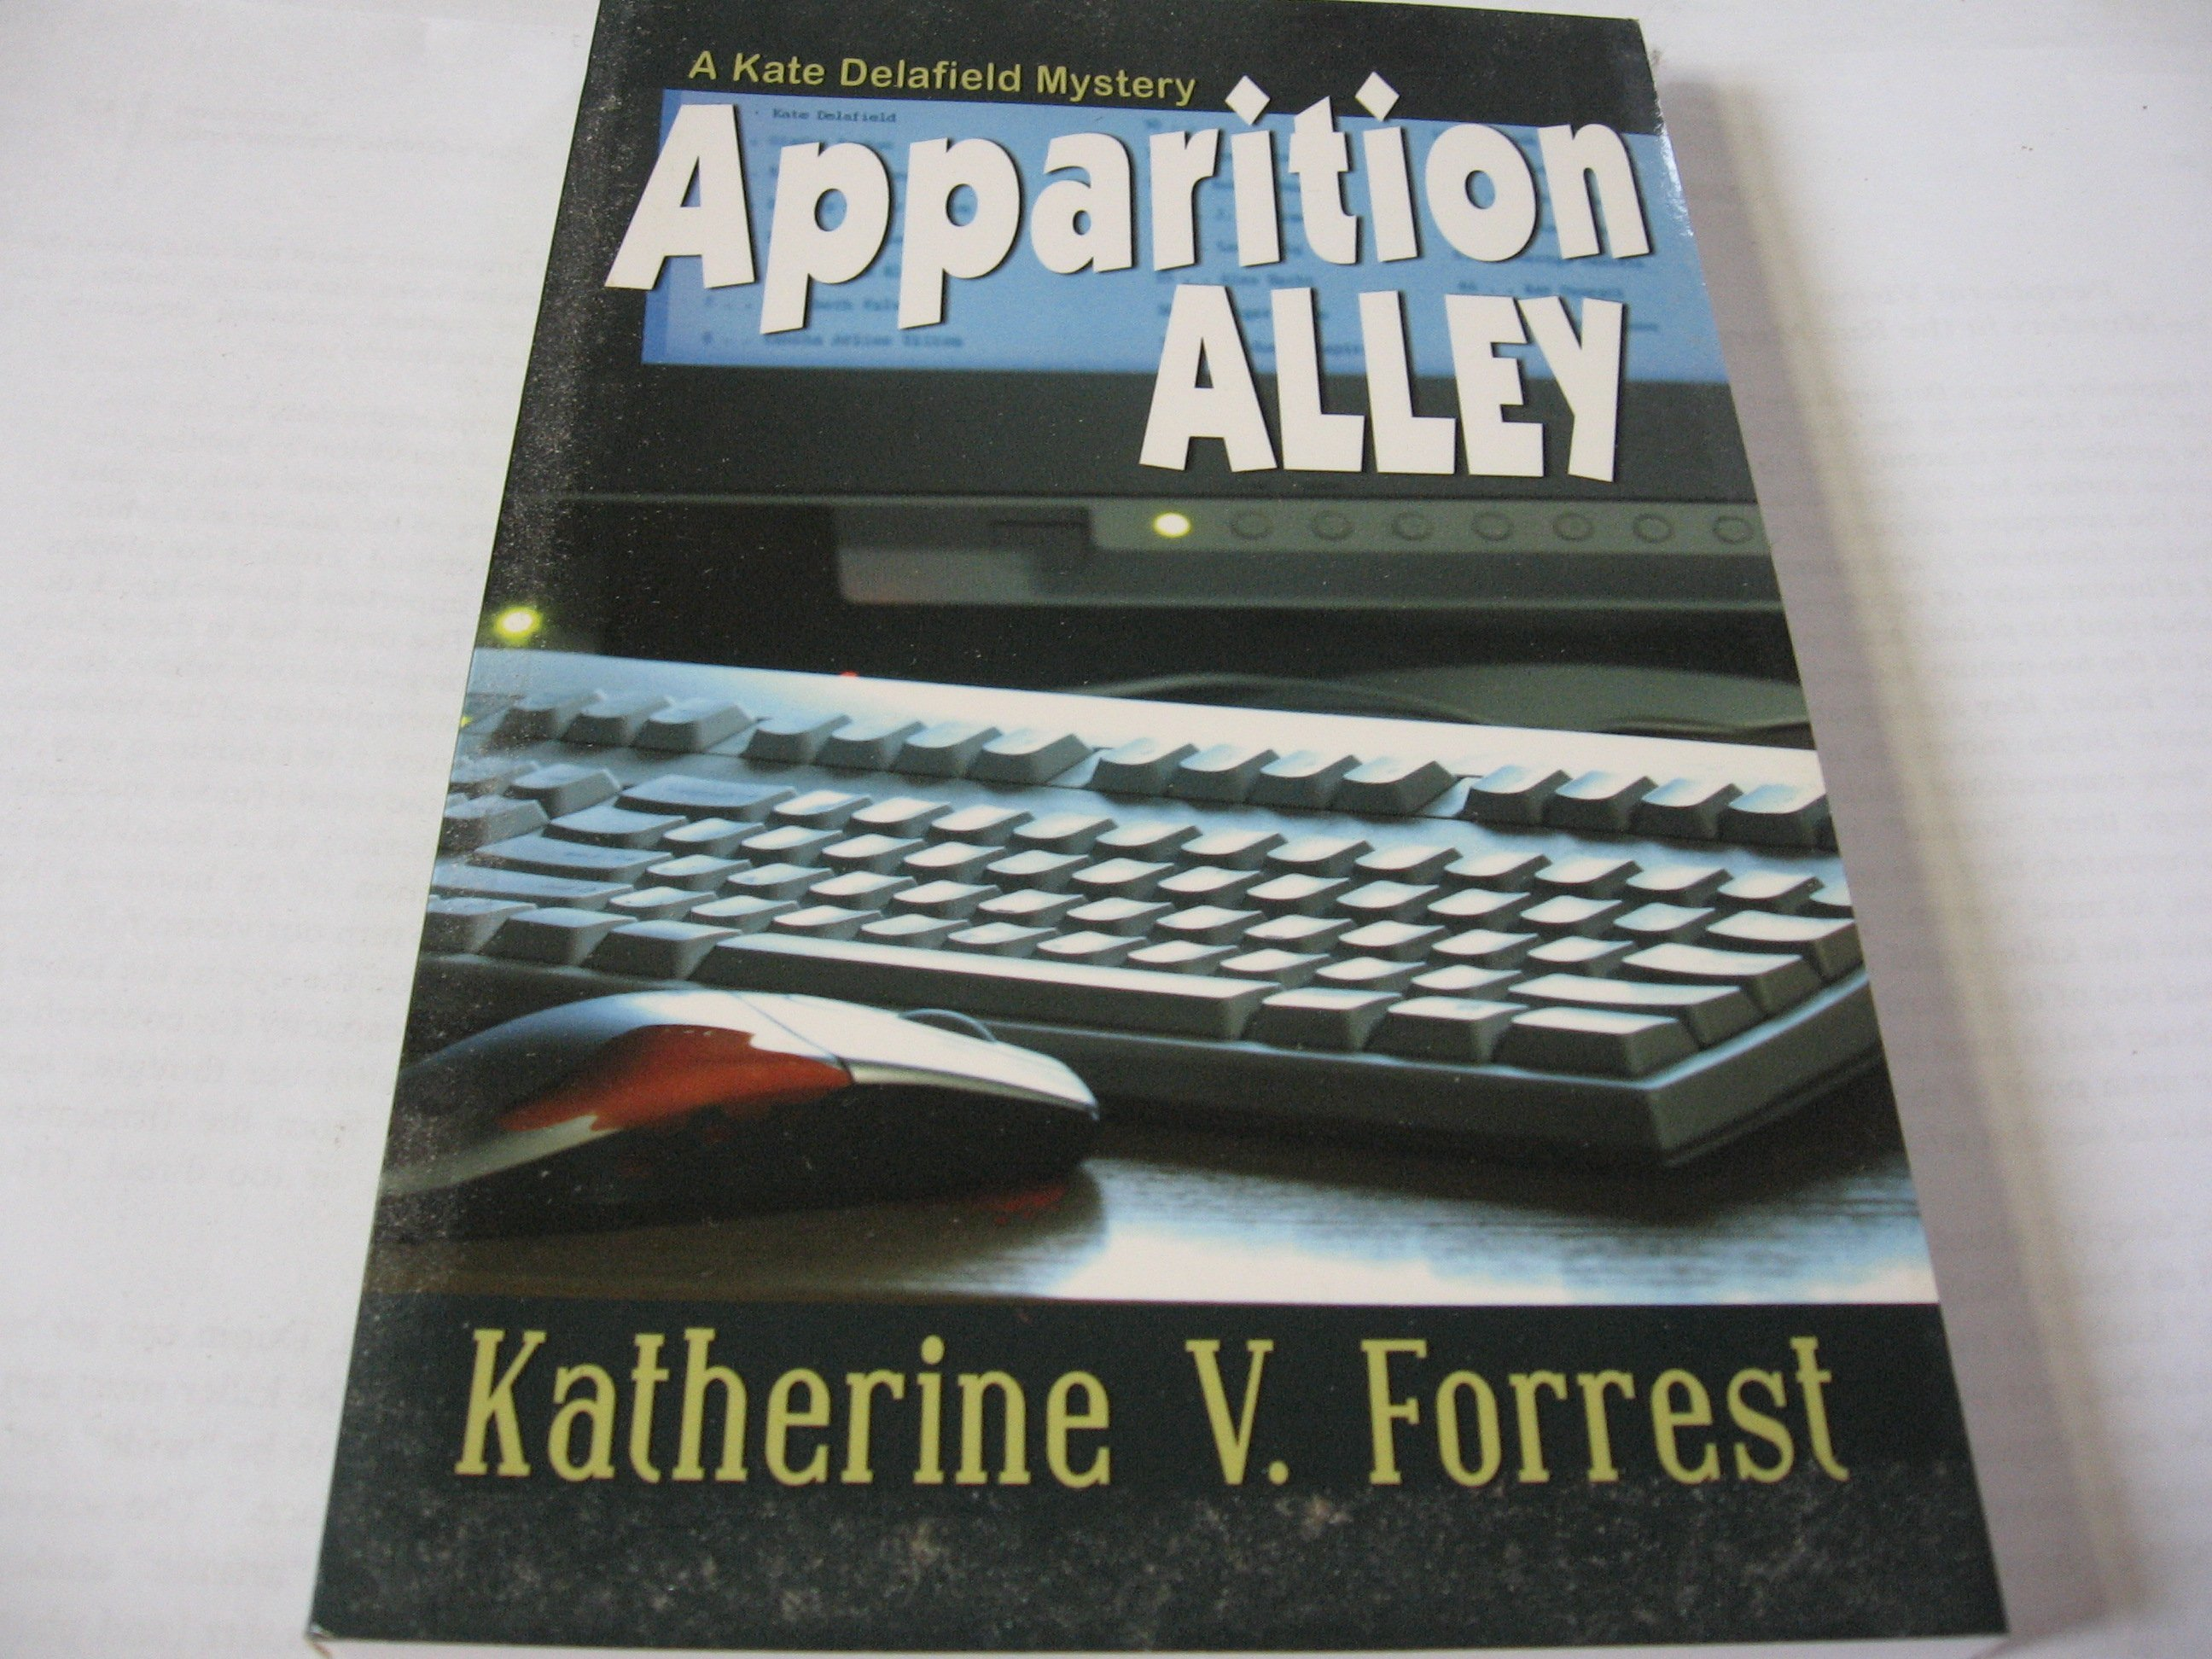 Apparition Alley: A Kate Delafield Mystery Forrest 英文推理小說近